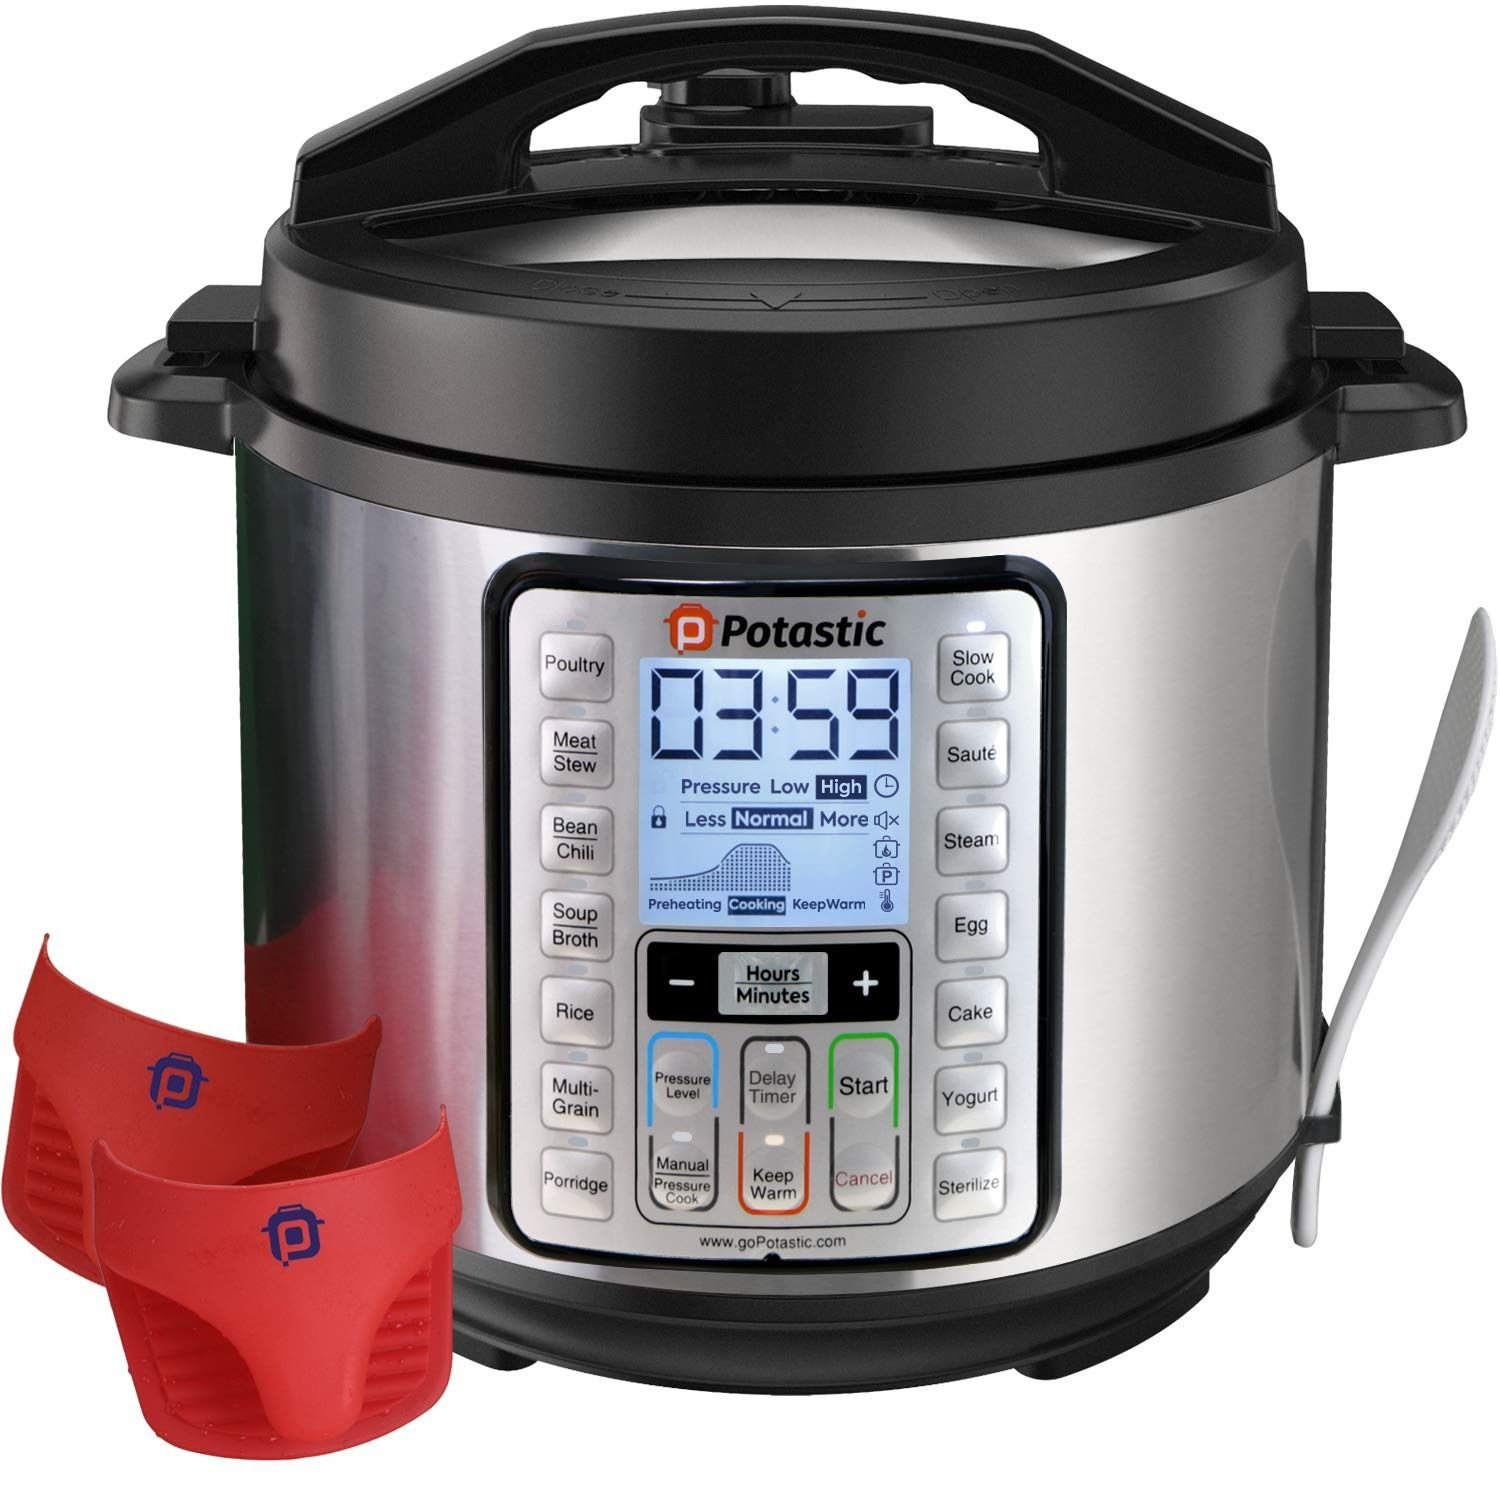 alpha-grp.co.jp Canner with Measuring Cup 10-QT, Stainless Steel ...